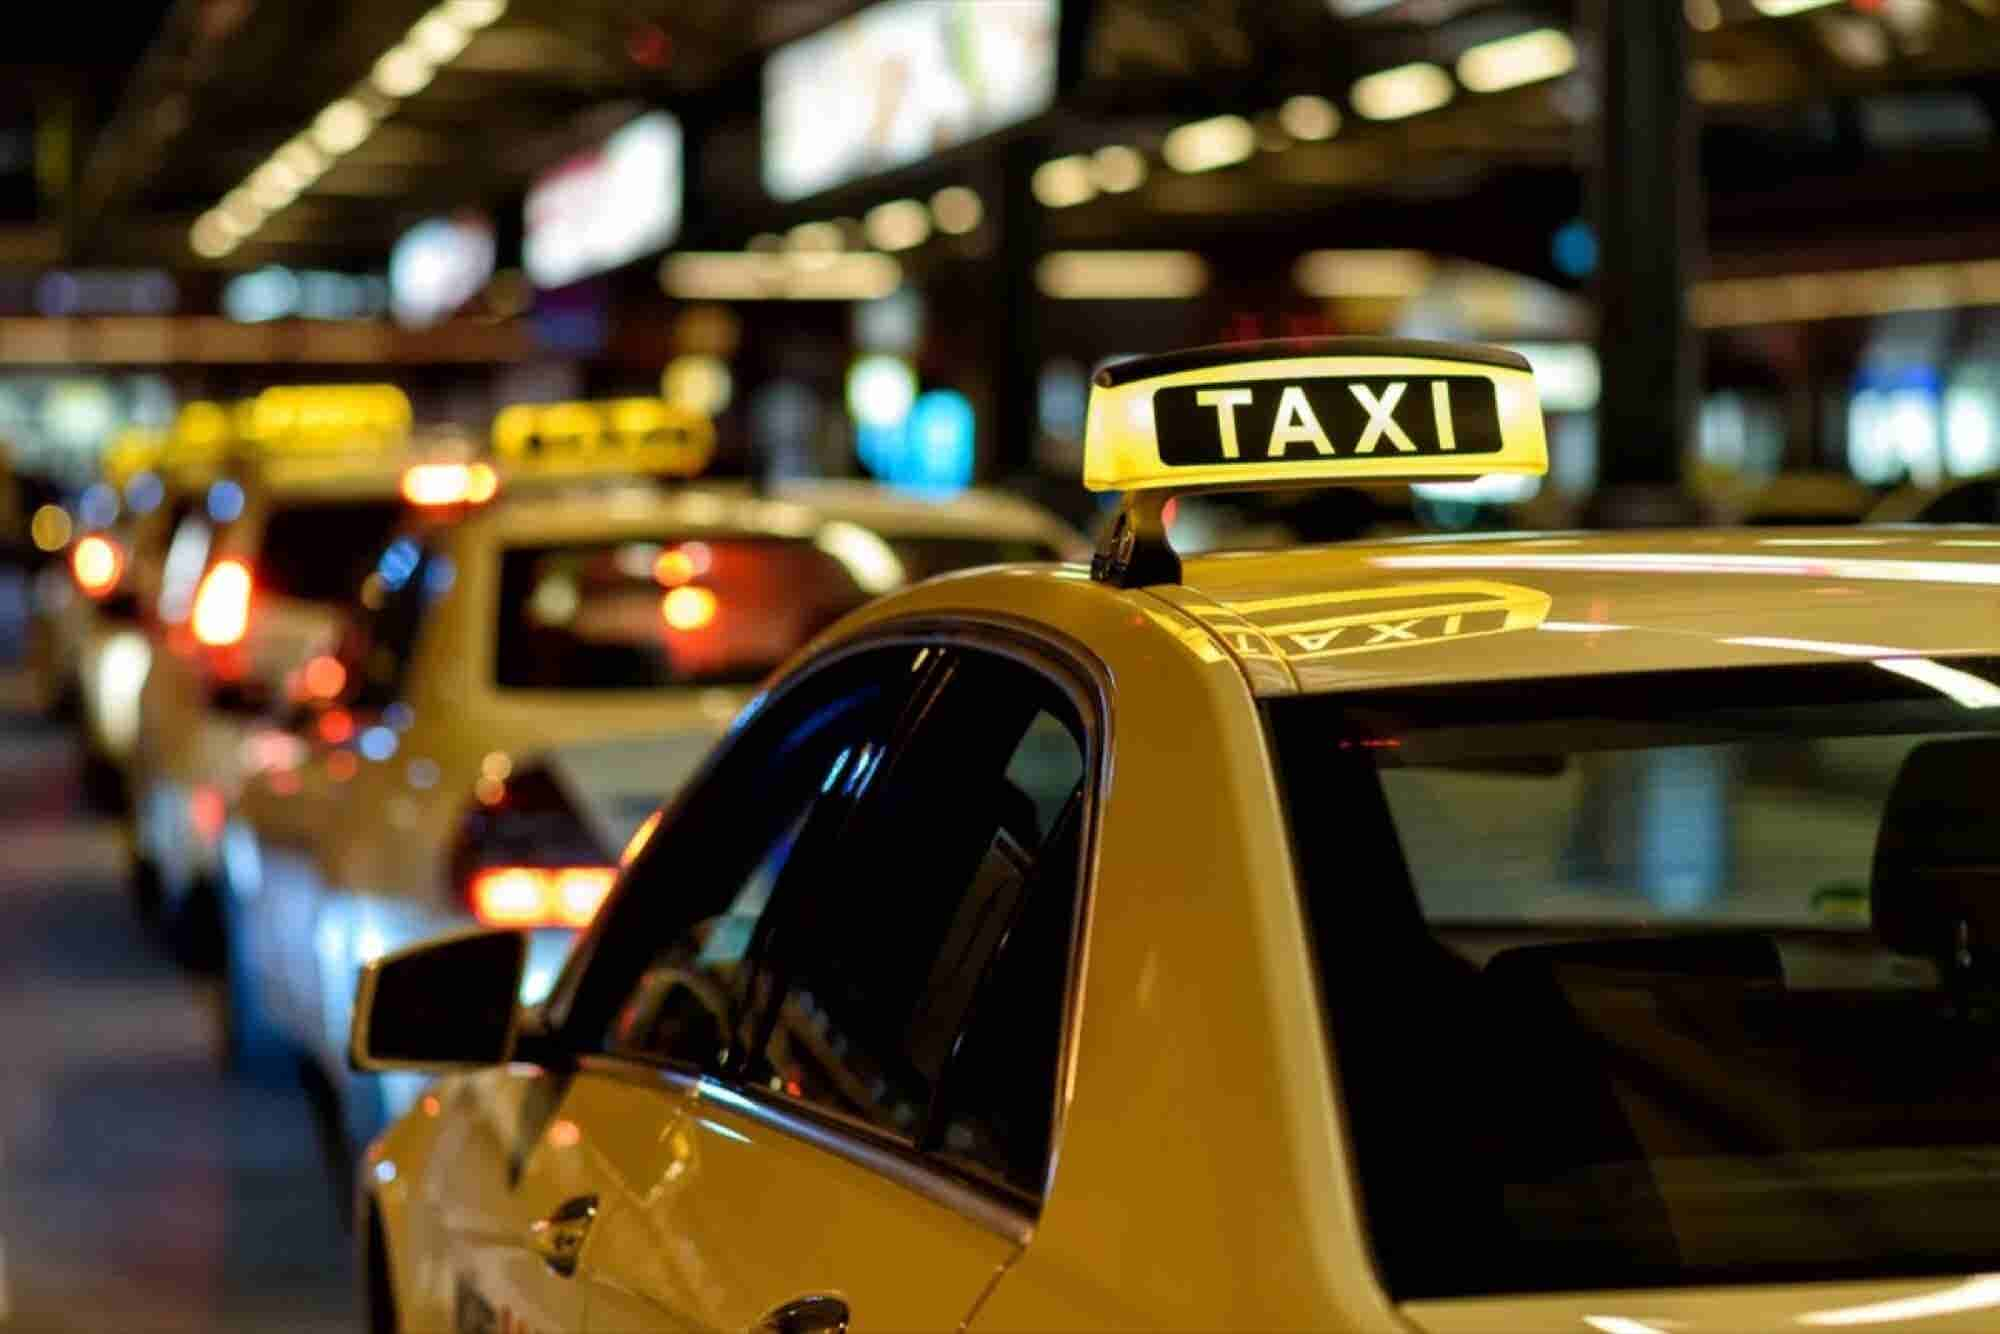 Daimler's Mytaxi to Merge With Hailo to Take on Uber